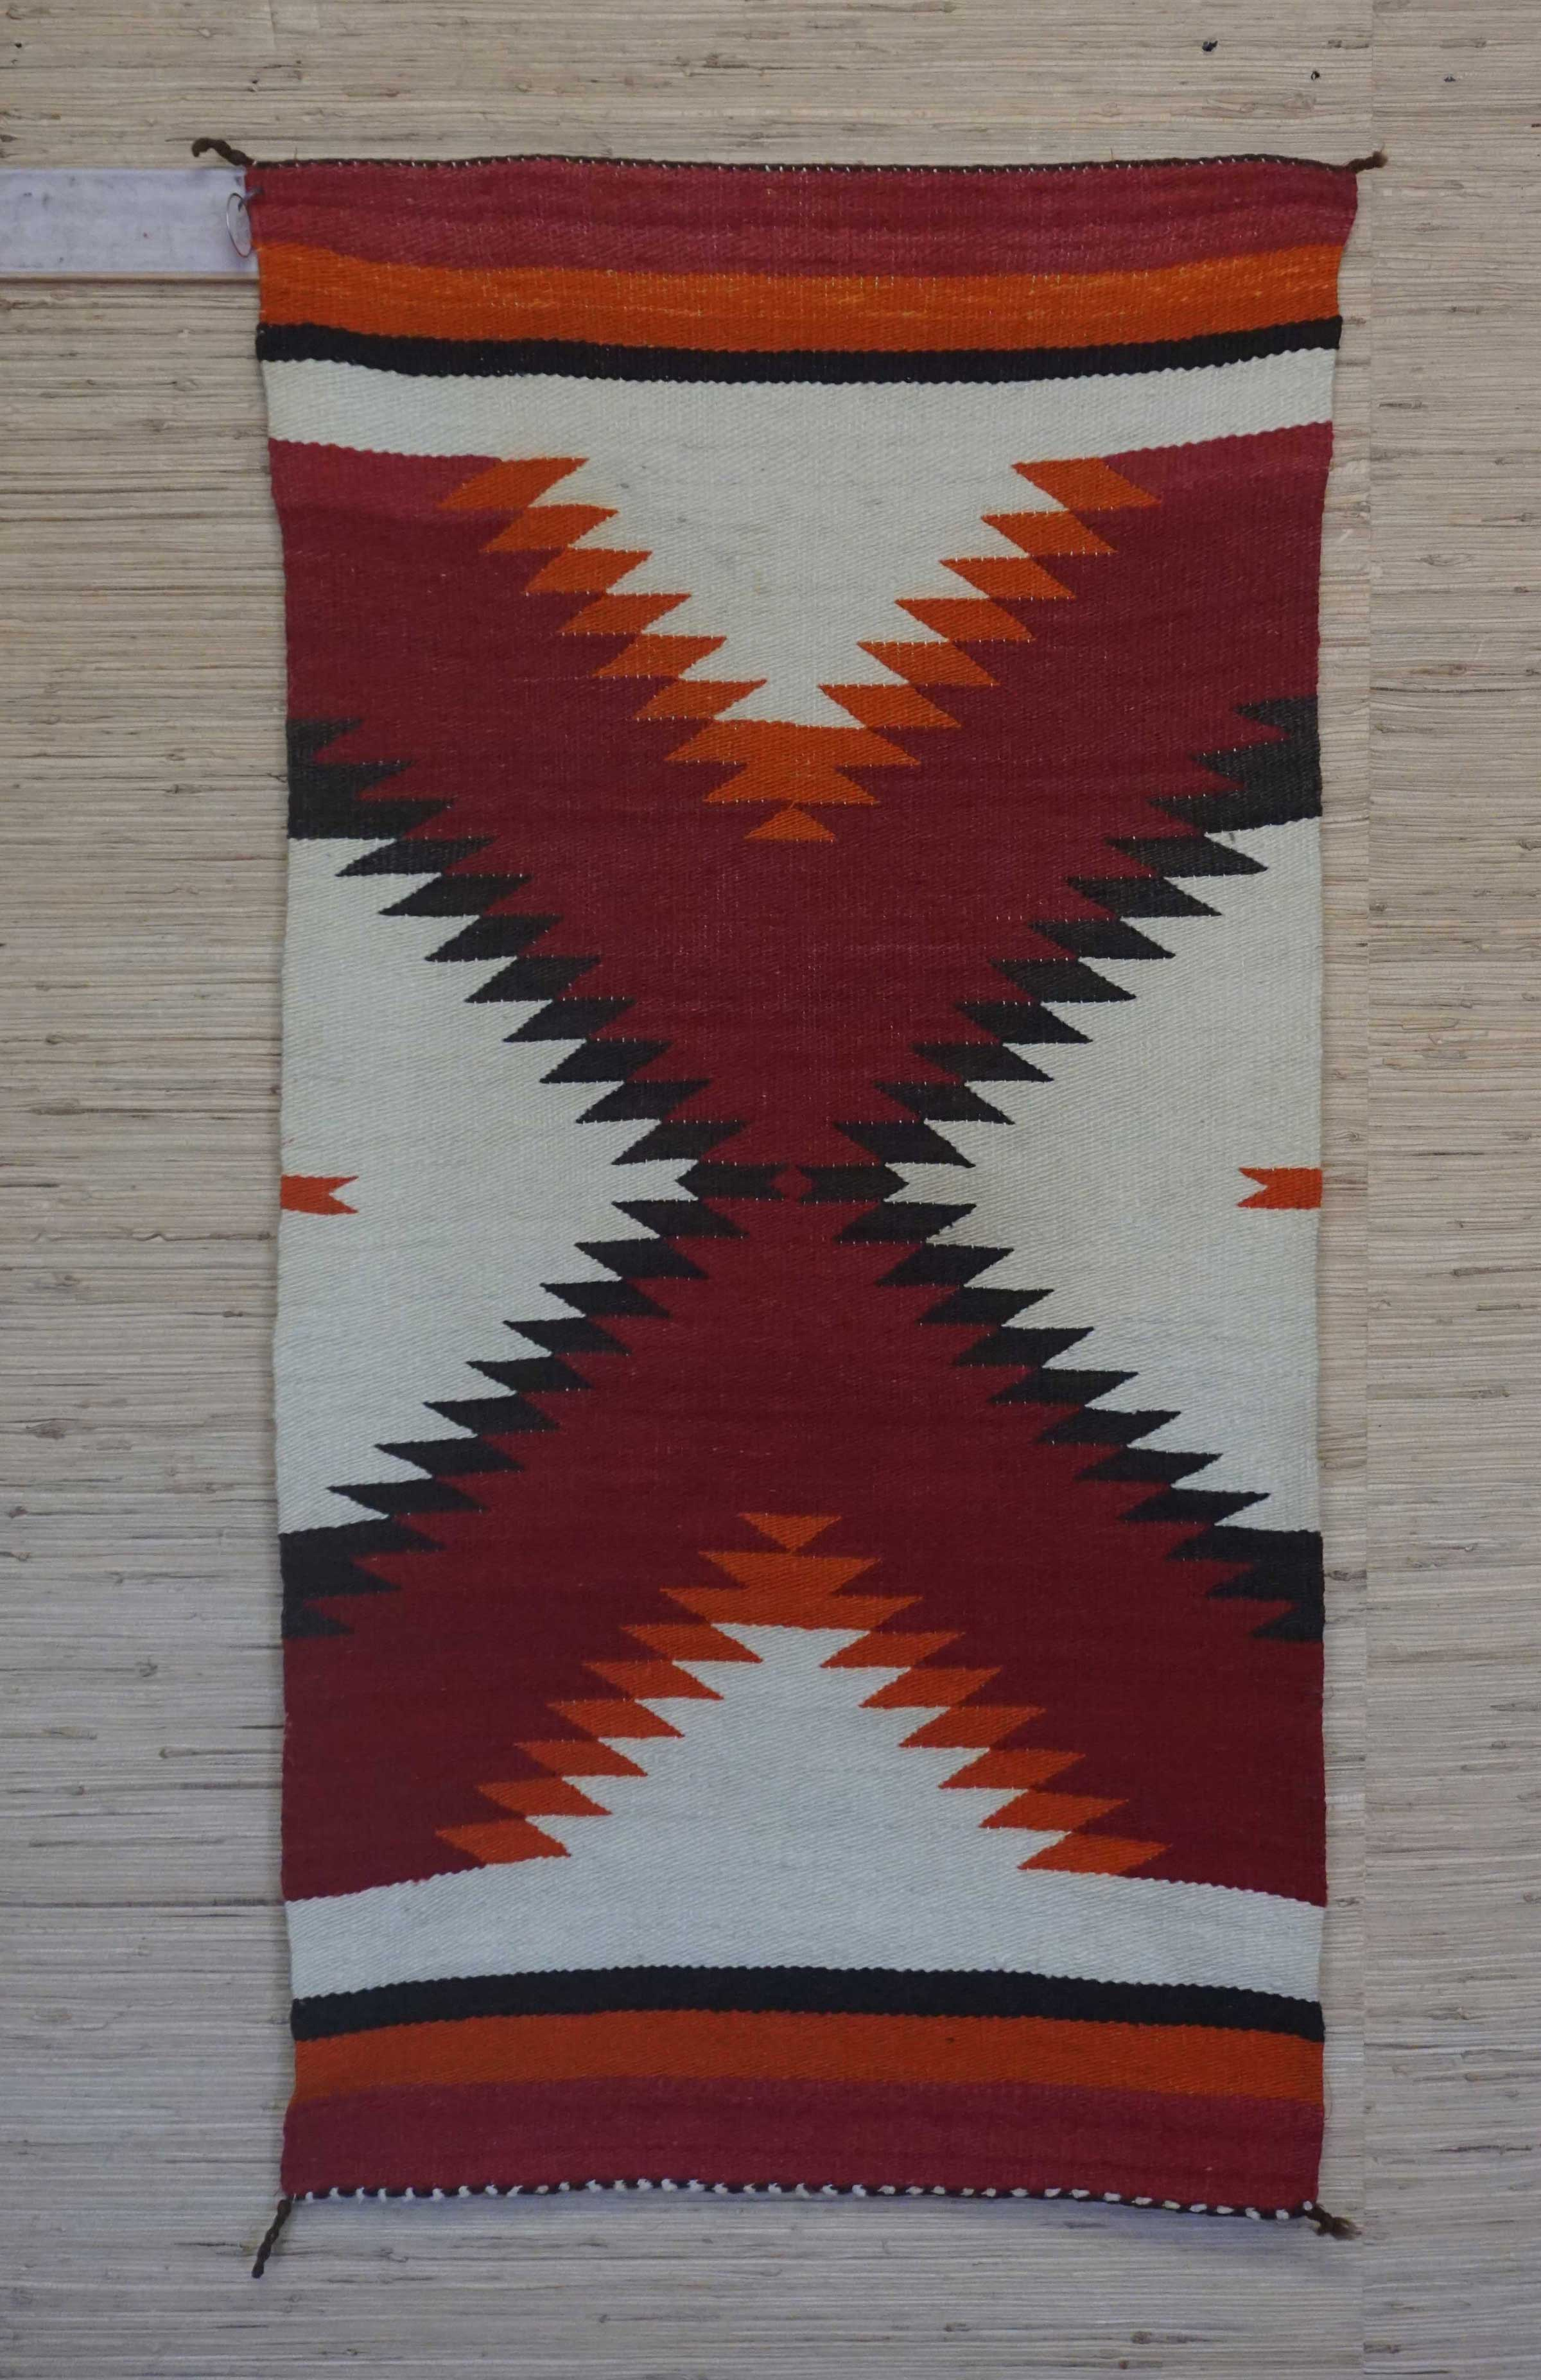 gallup throw navajo rug for sale 1000 charley 39 s navajo rugs for sale. Black Bedroom Furniture Sets. Home Design Ideas